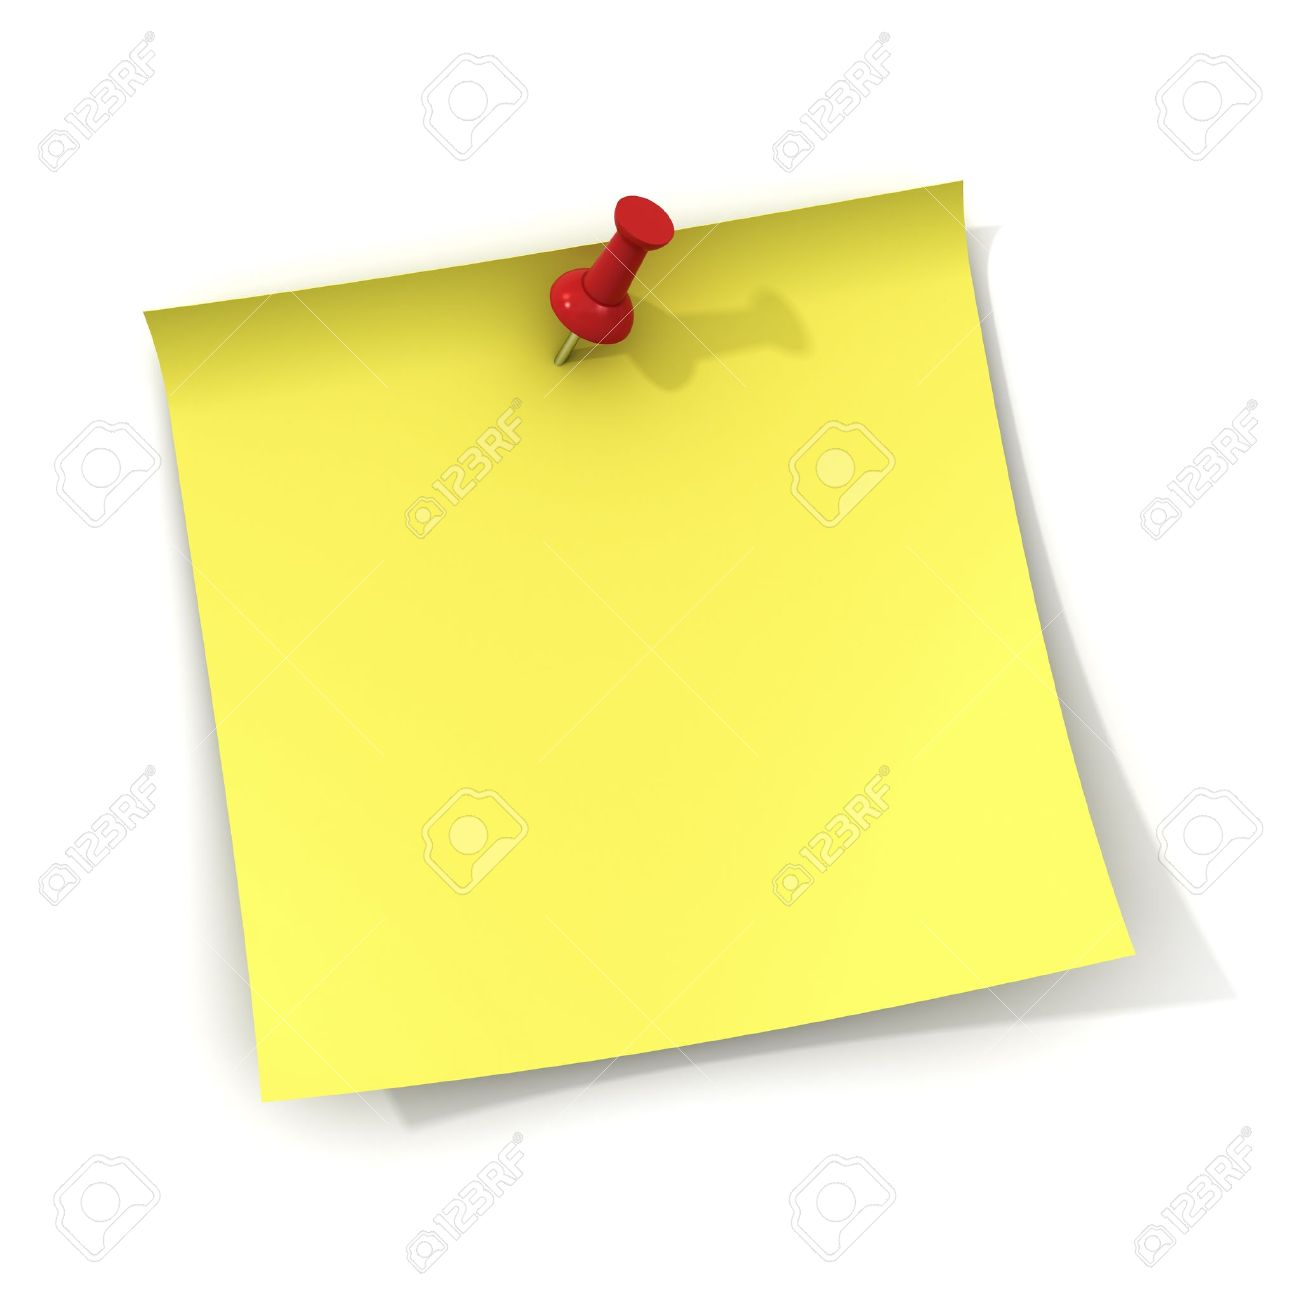 Yellow sticky note and red push pin isolated on white background with shadow Stock Photo - 12432422